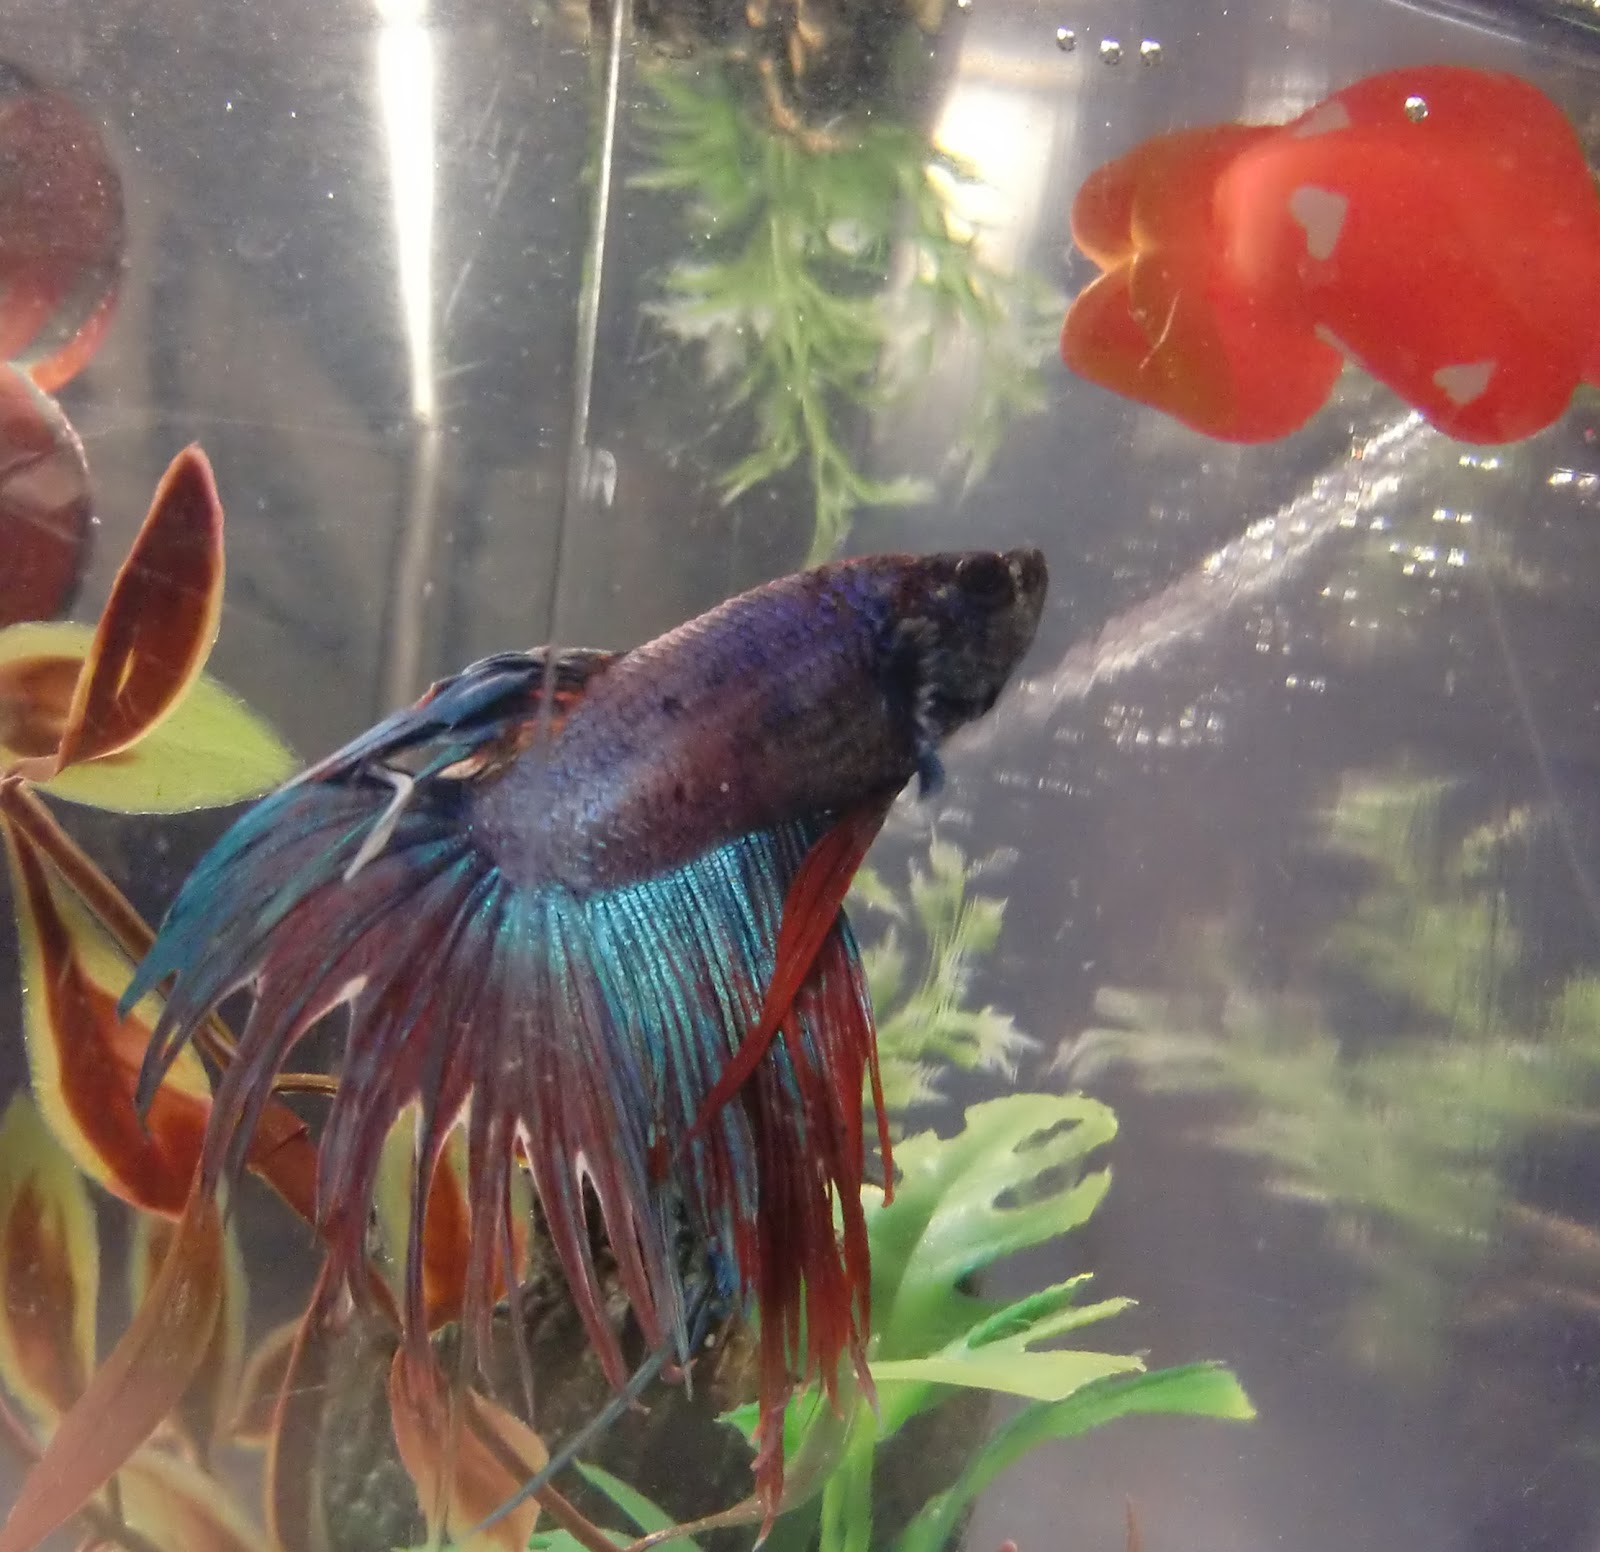 Betta fish awareness day betta fish care faq for How long can a betta fish live